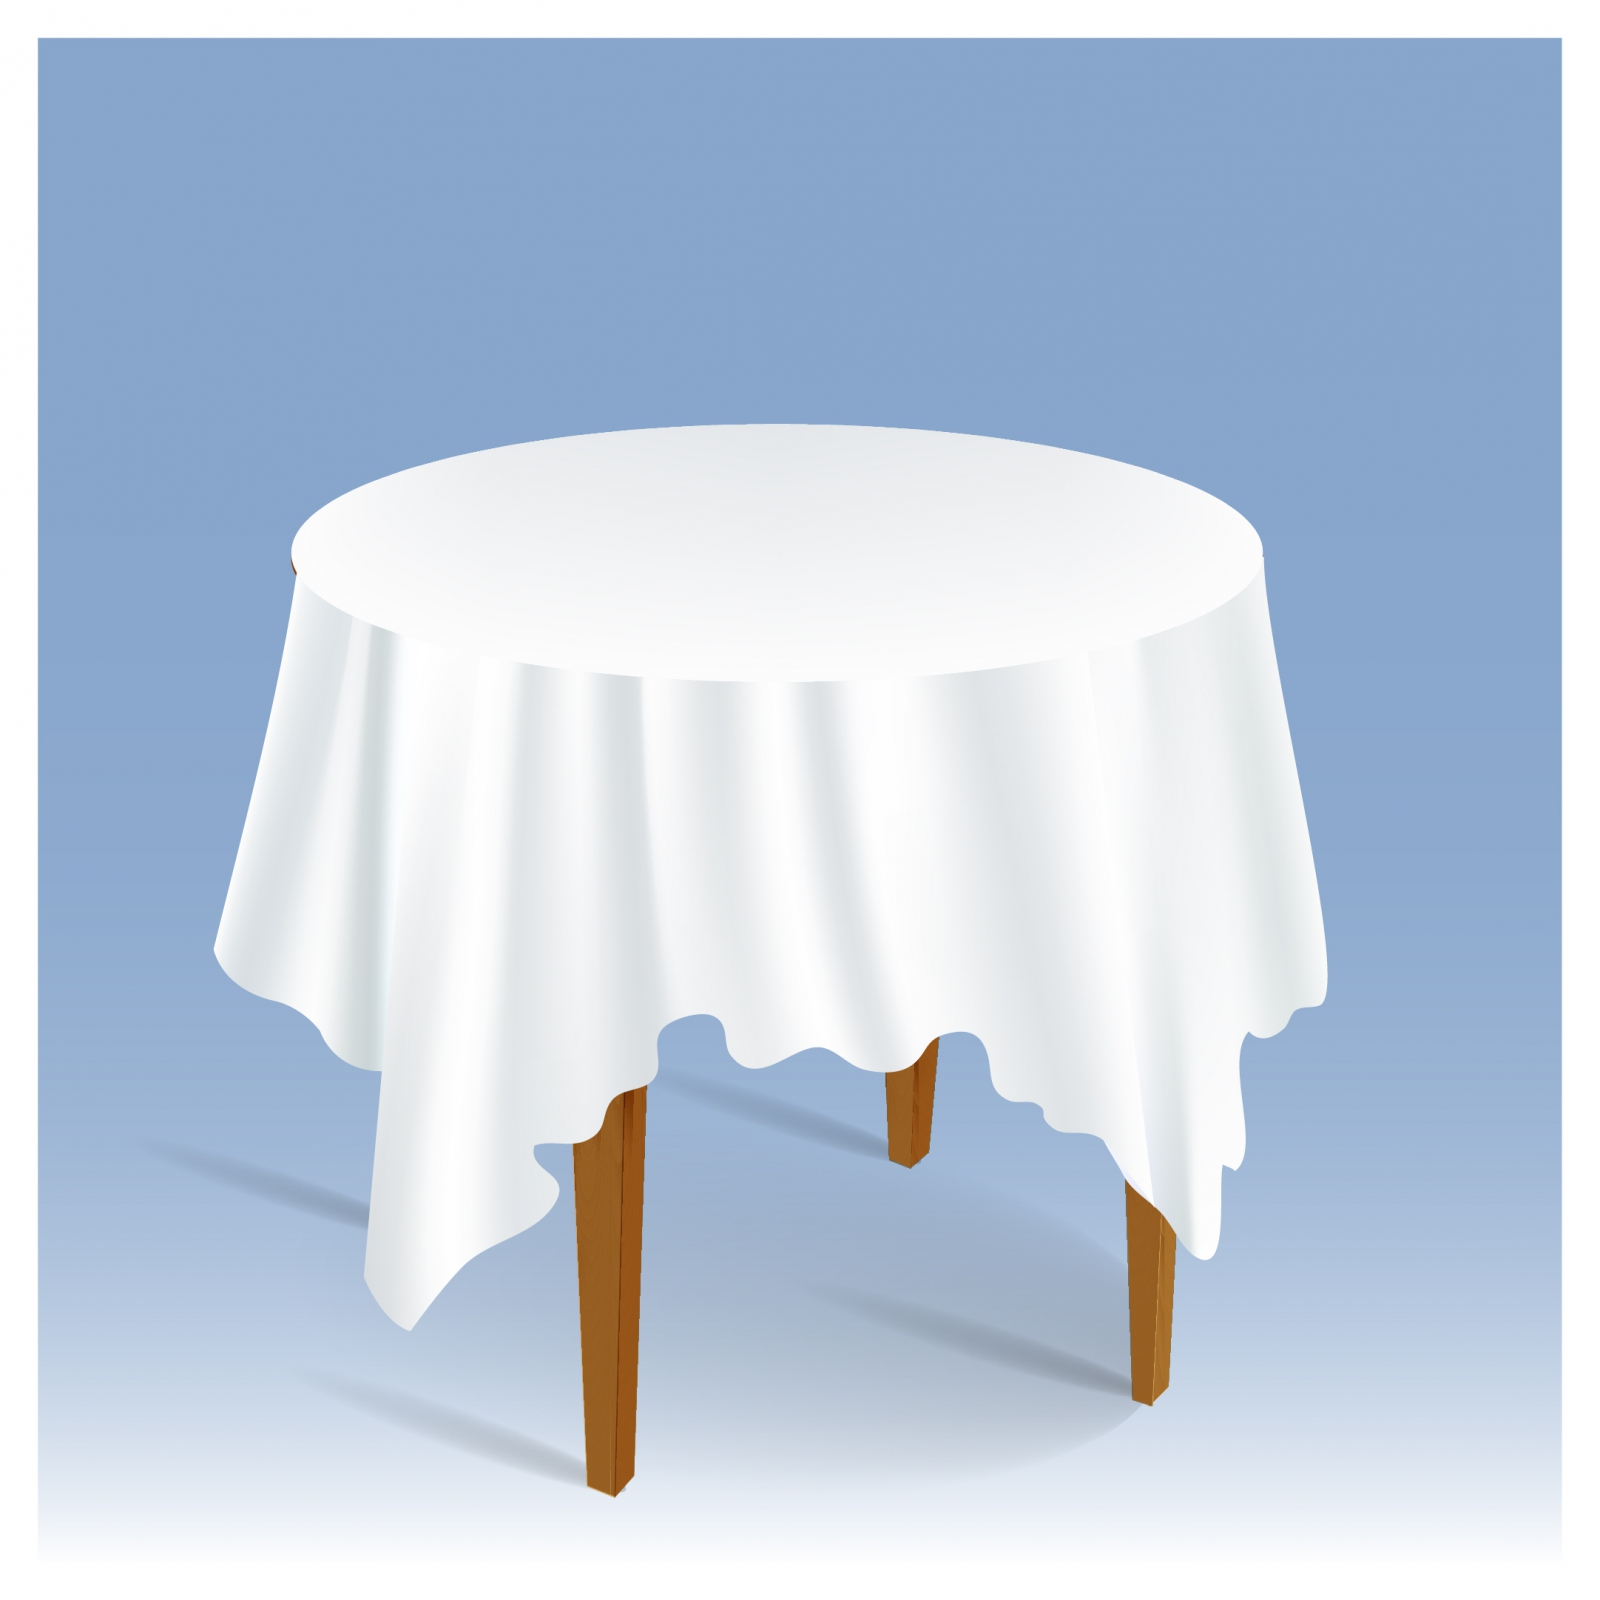 1600x1600 Table Vector 11 An Images Hub